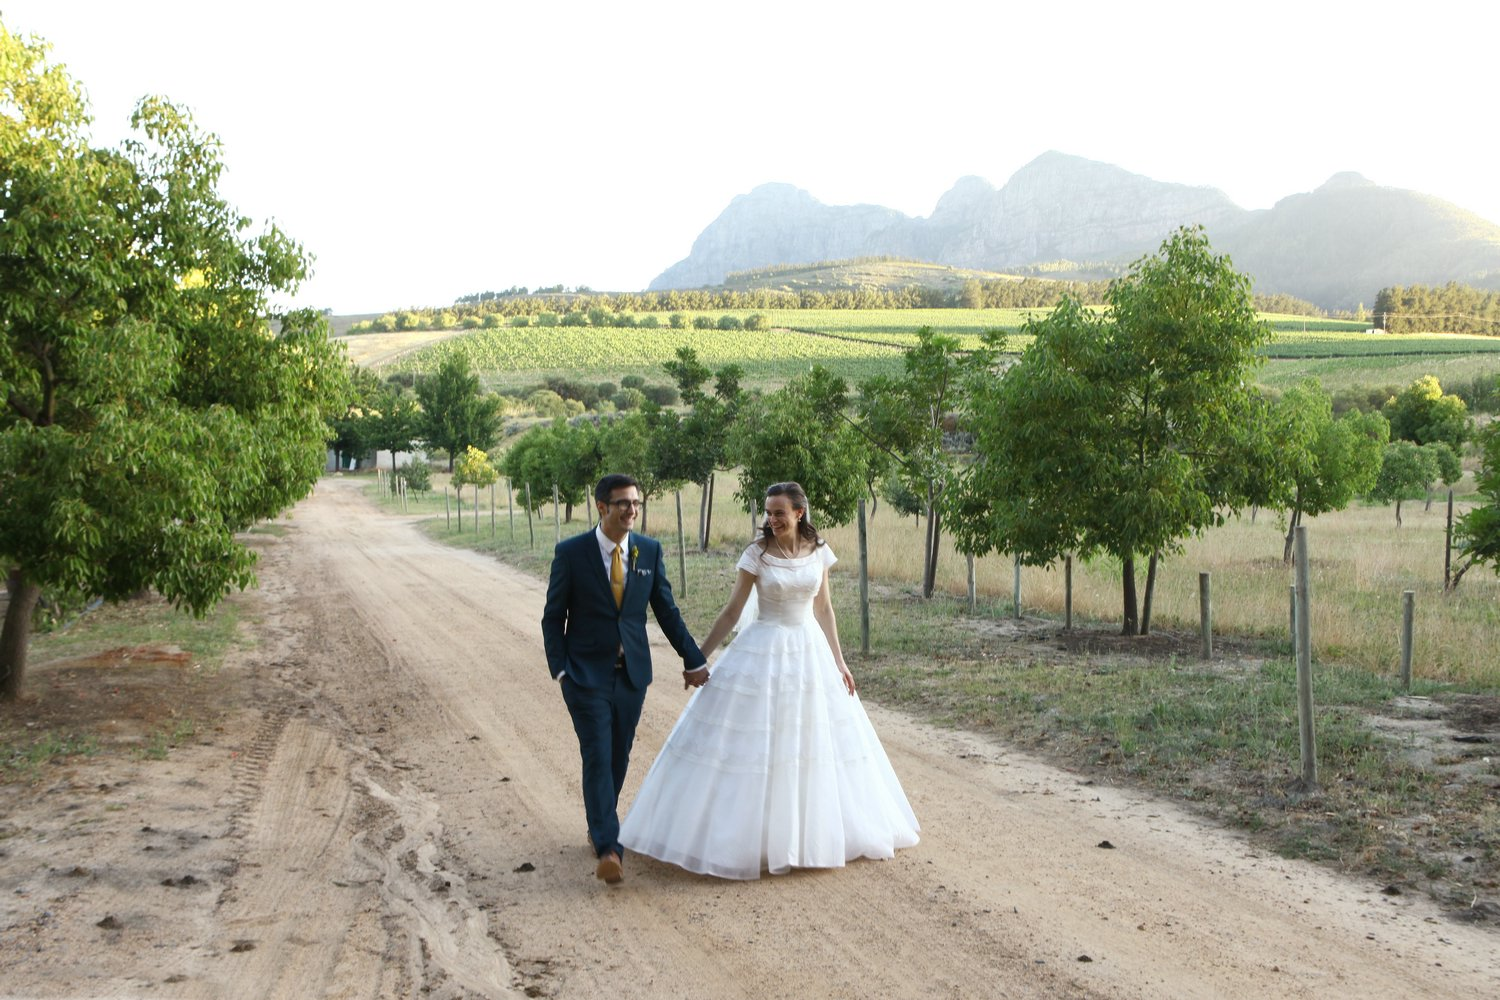 Weddings in the Winelands, Backsberg Wine Estate Wedding Photography, Wedding Photographer Cape Town, Wedding in Cape Town, Wedding Photography, Western Cape Wedding Photographers